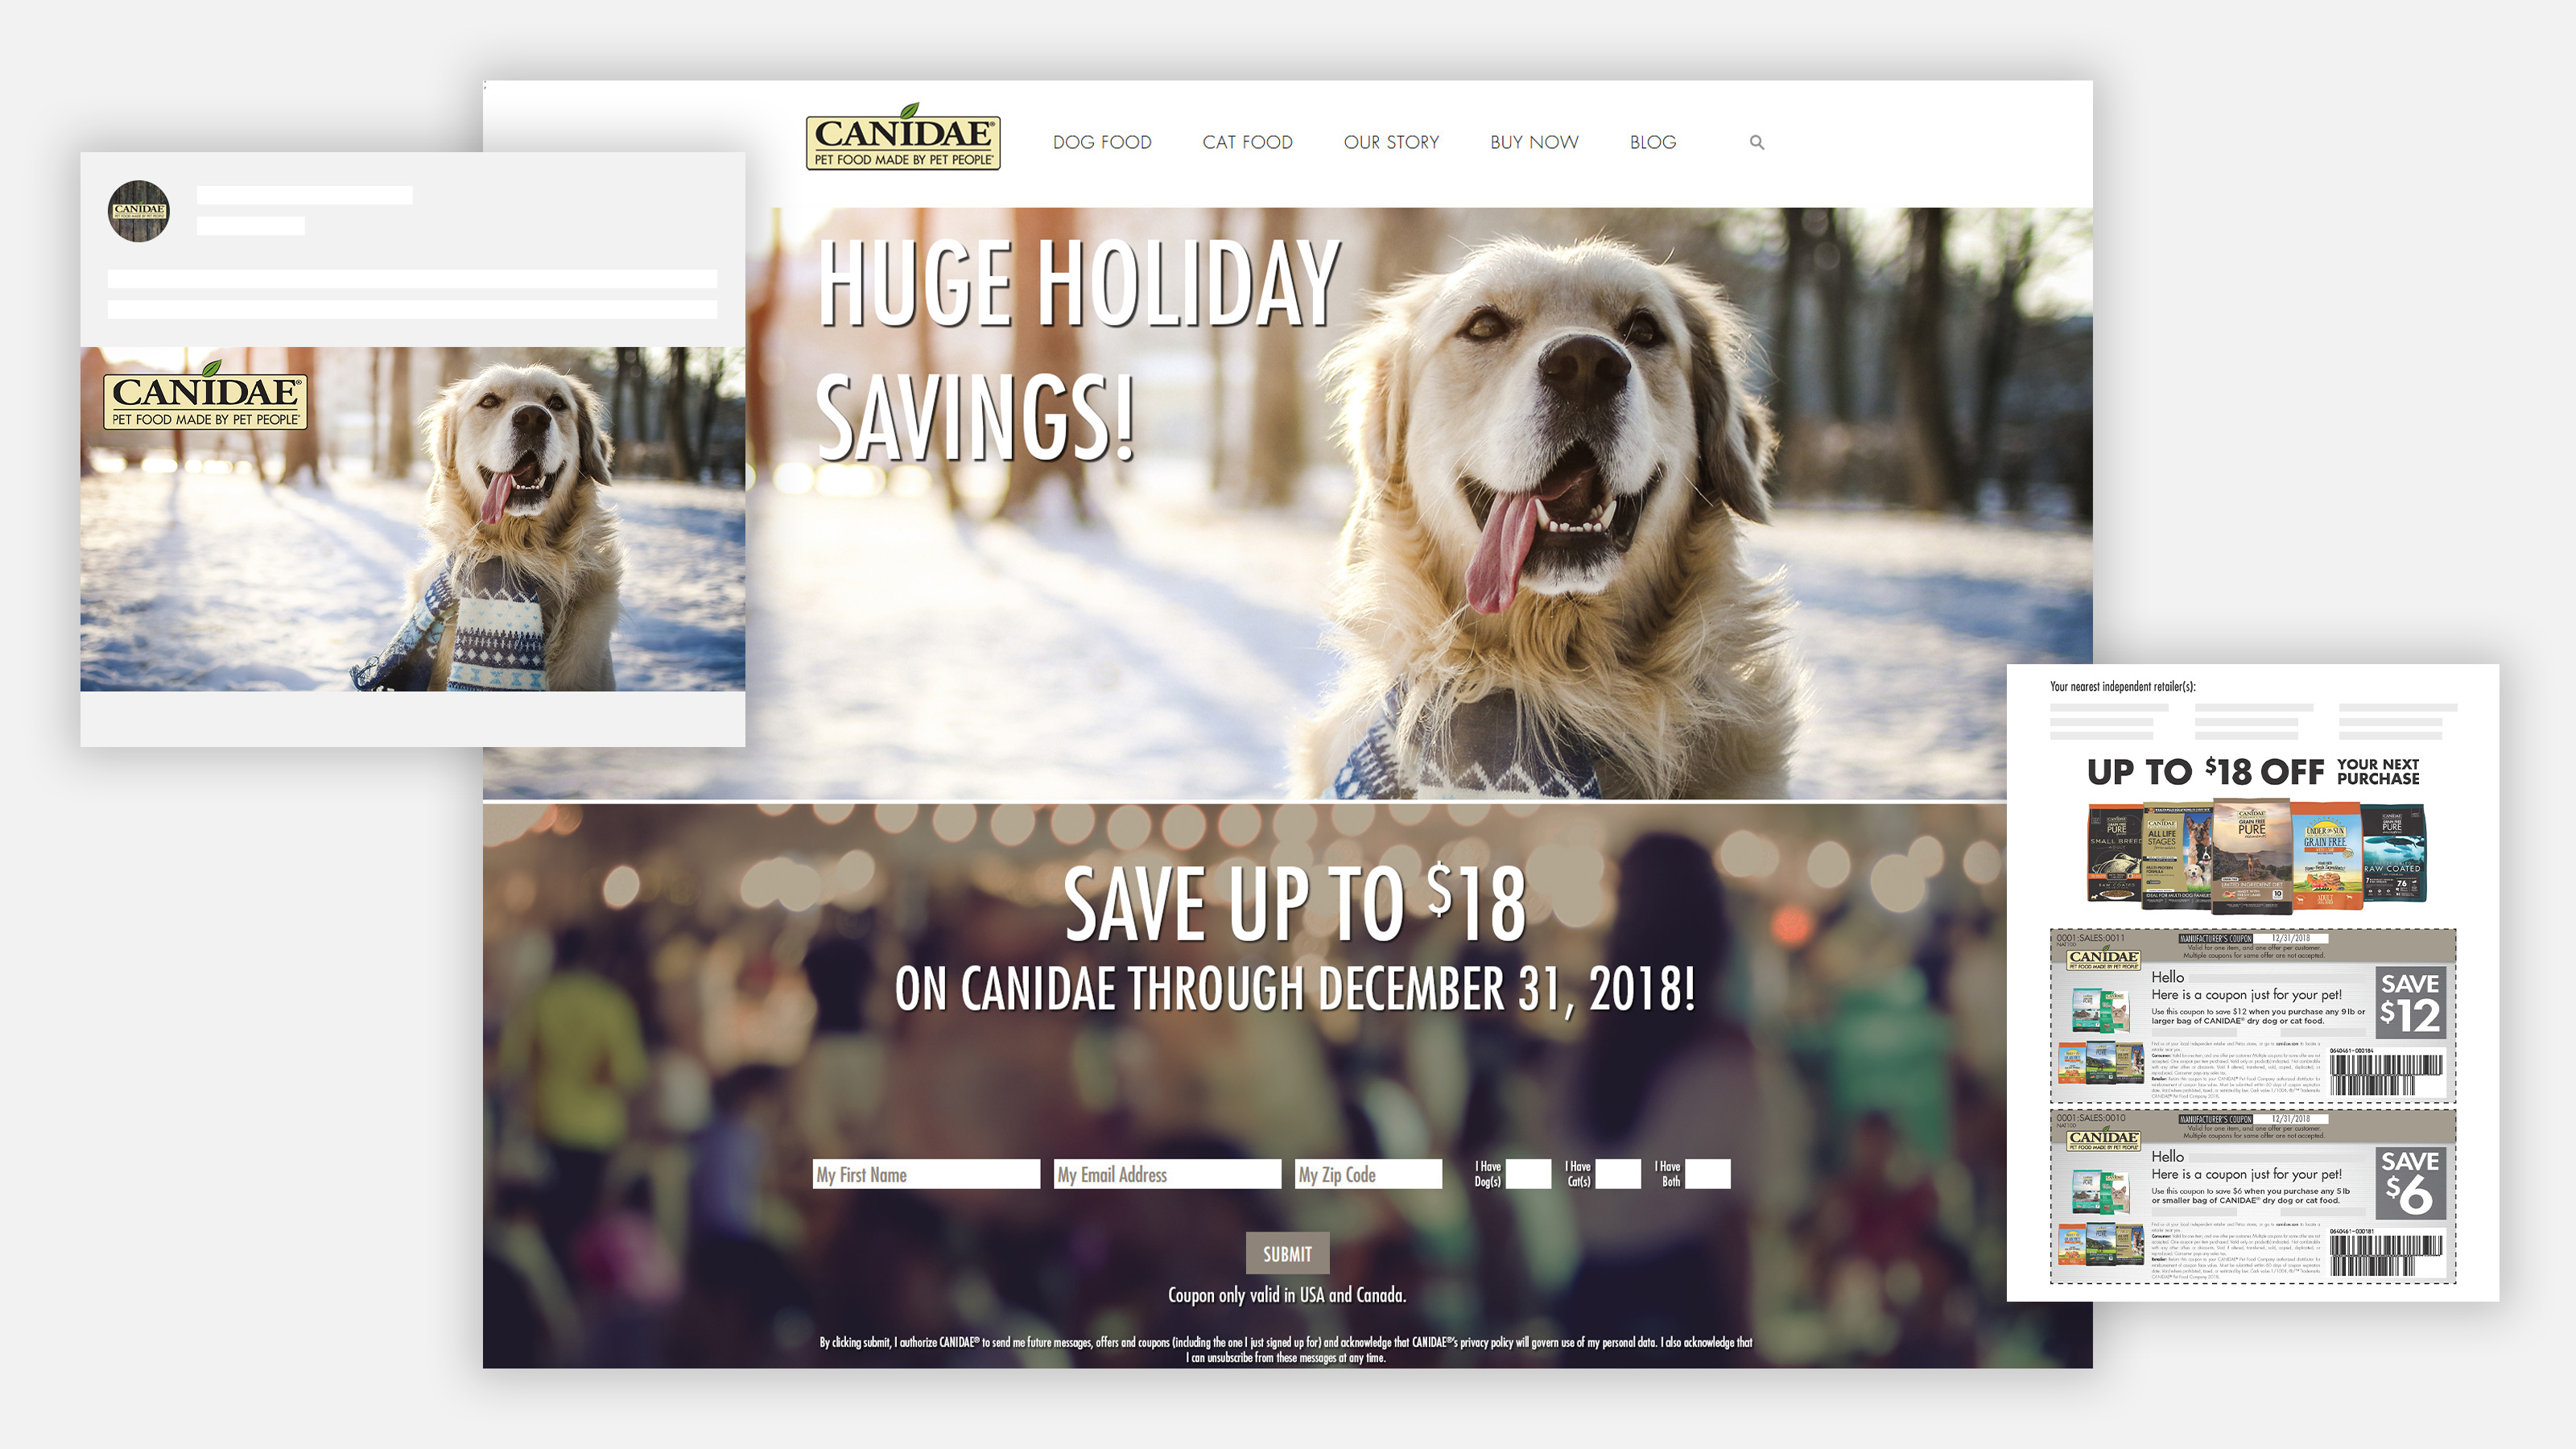 CANIDAE Pet Food holiday coupon landing page